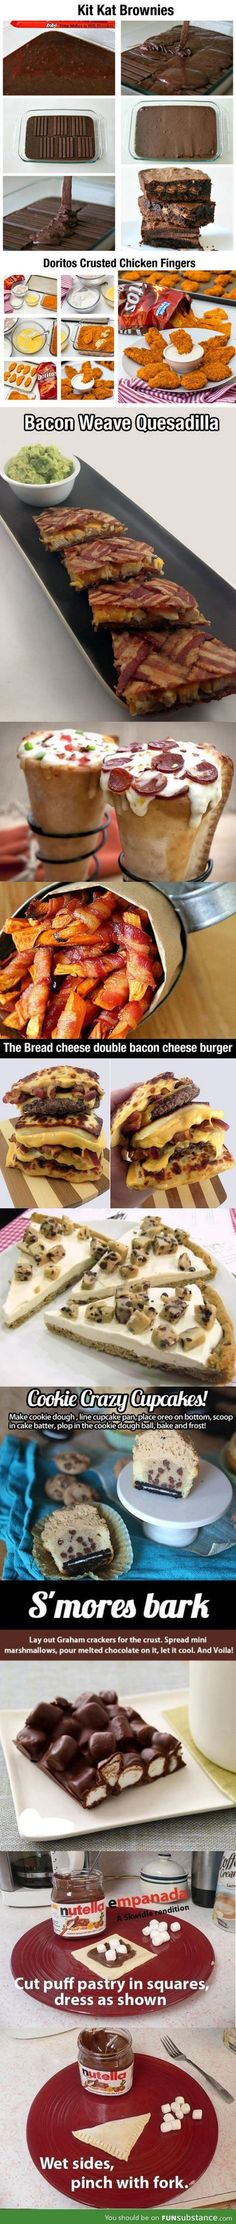 These food creations will make you hungry - FunSubstance.com